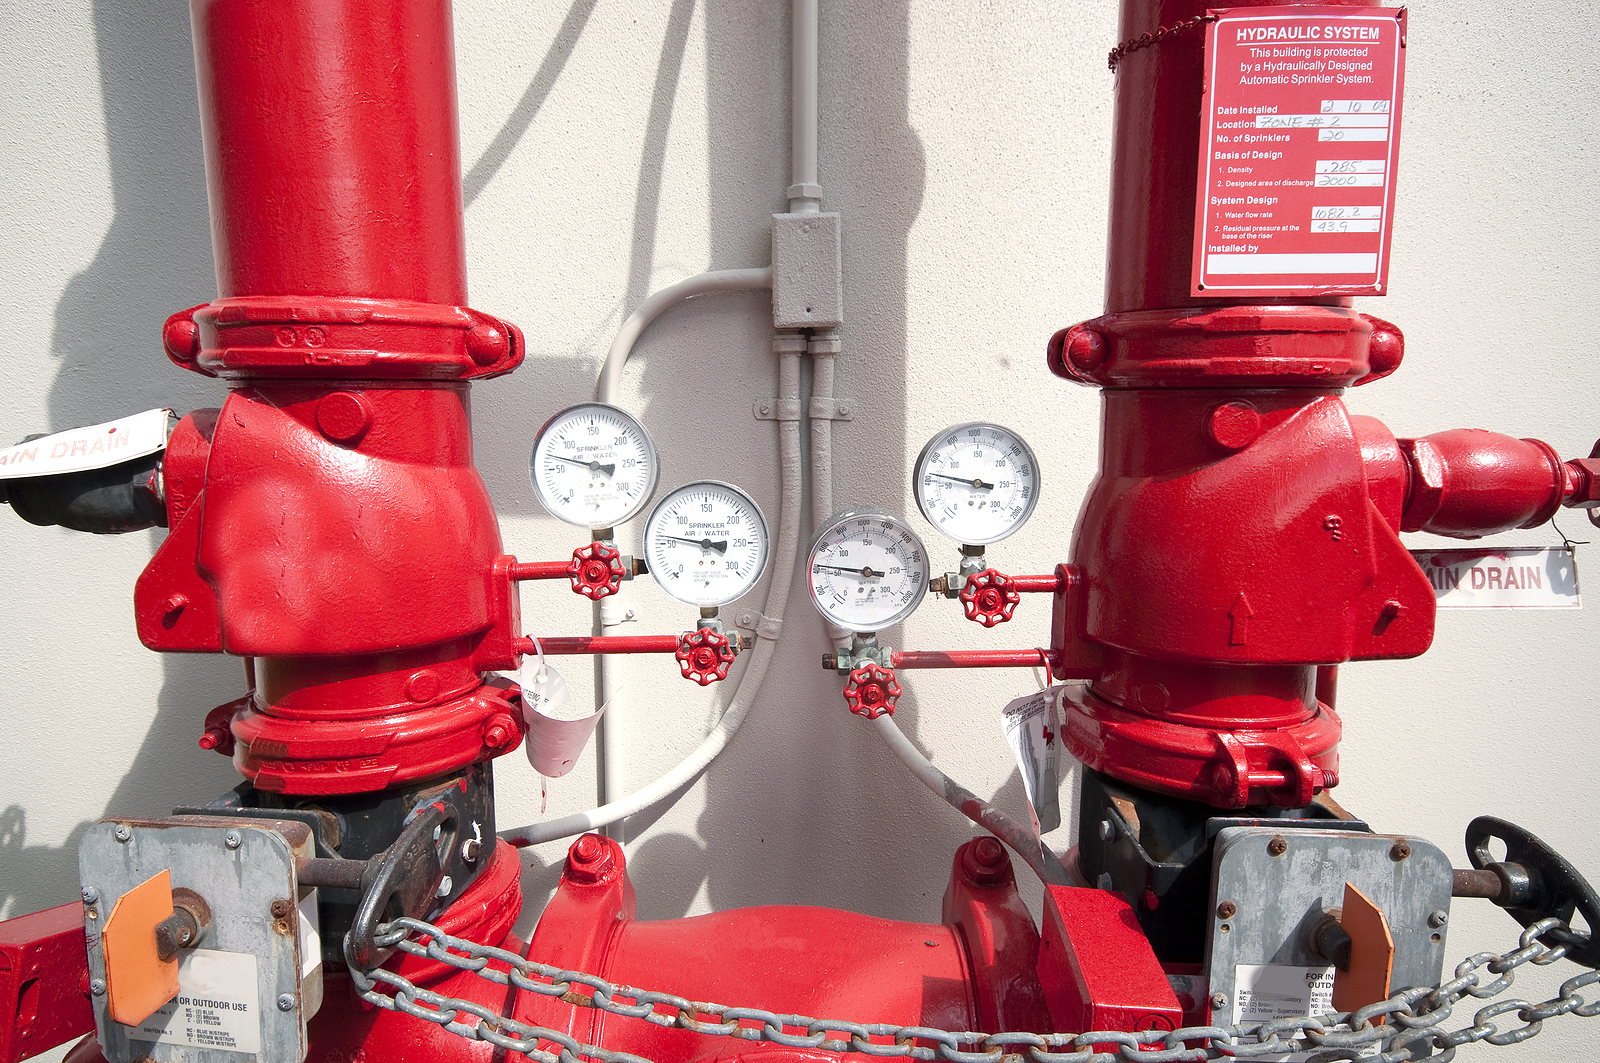 Maximum Water Pressure for residential fire sprinkler systems and how to measure water pressure for sprinklers – a basic guide for residential occupancies